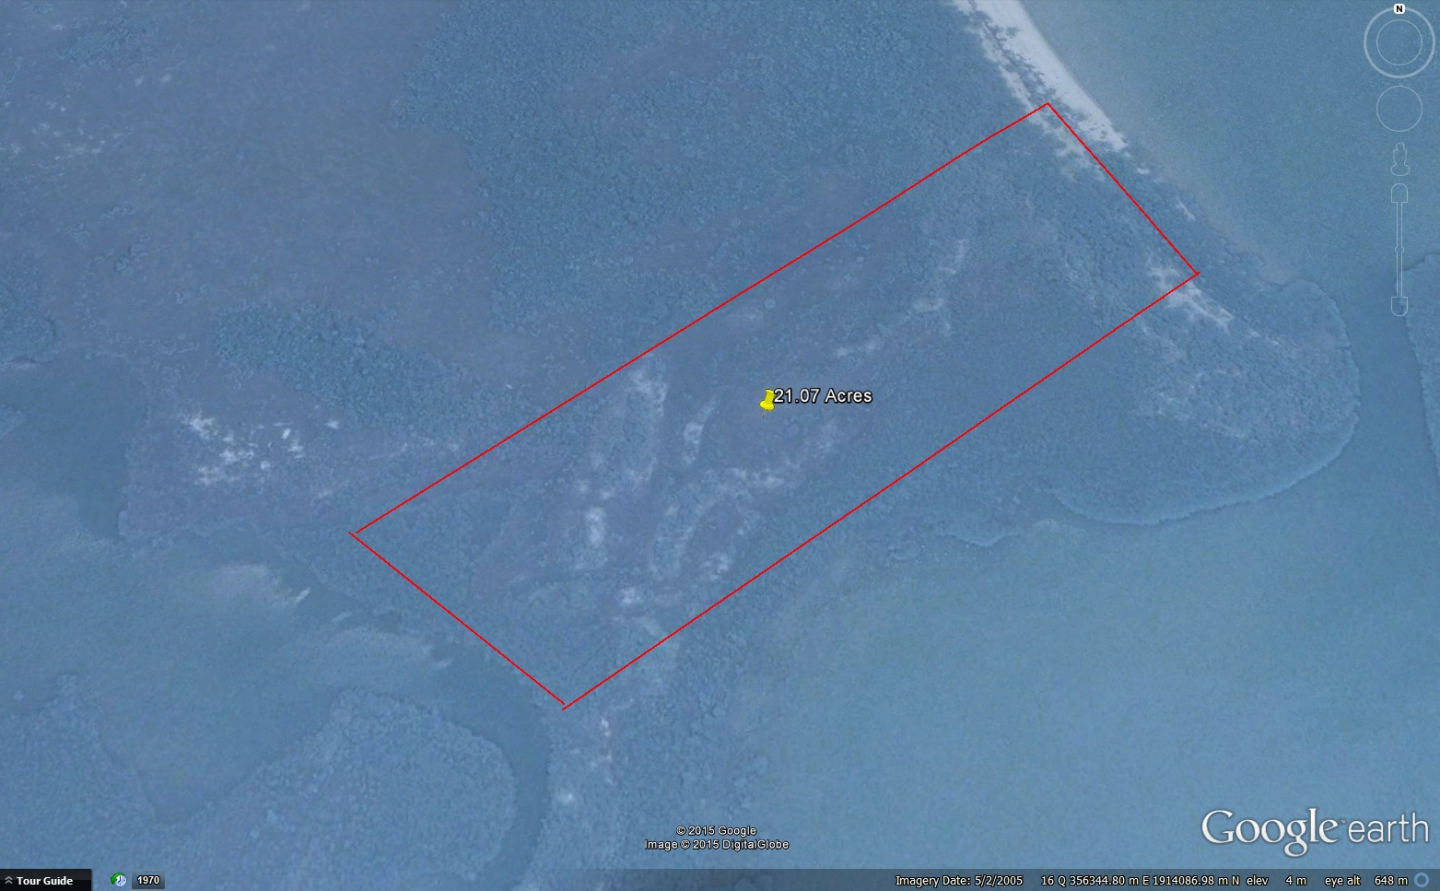 21.07 acres of lagoon frontage property